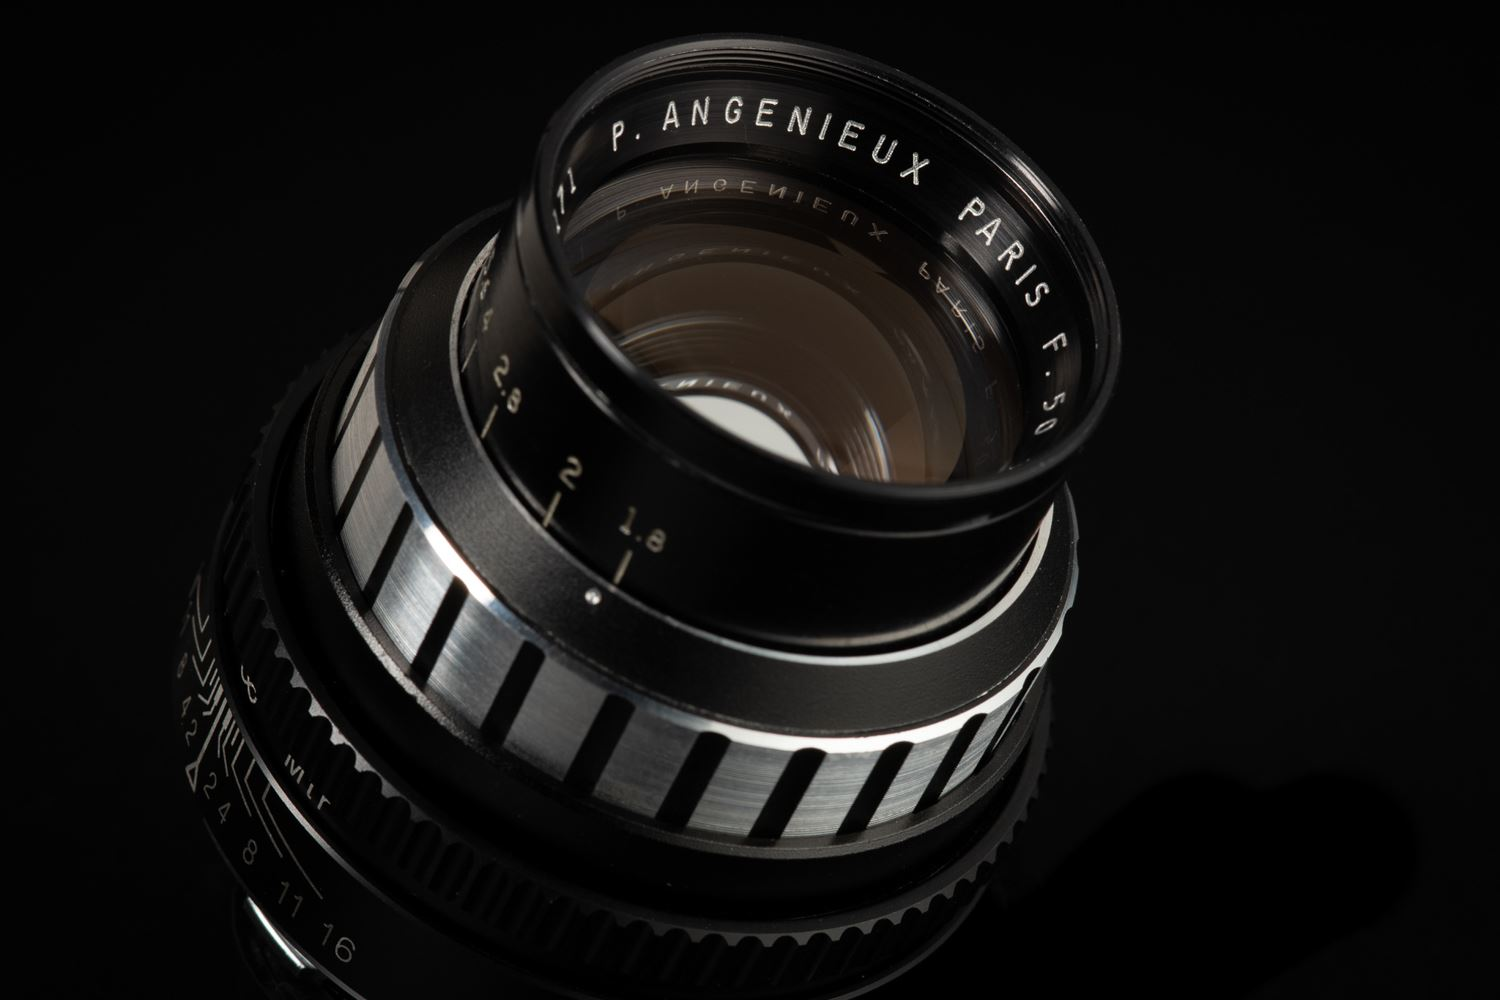 Picture of Angenieux Type S2 50mm f/1.8 Leica M